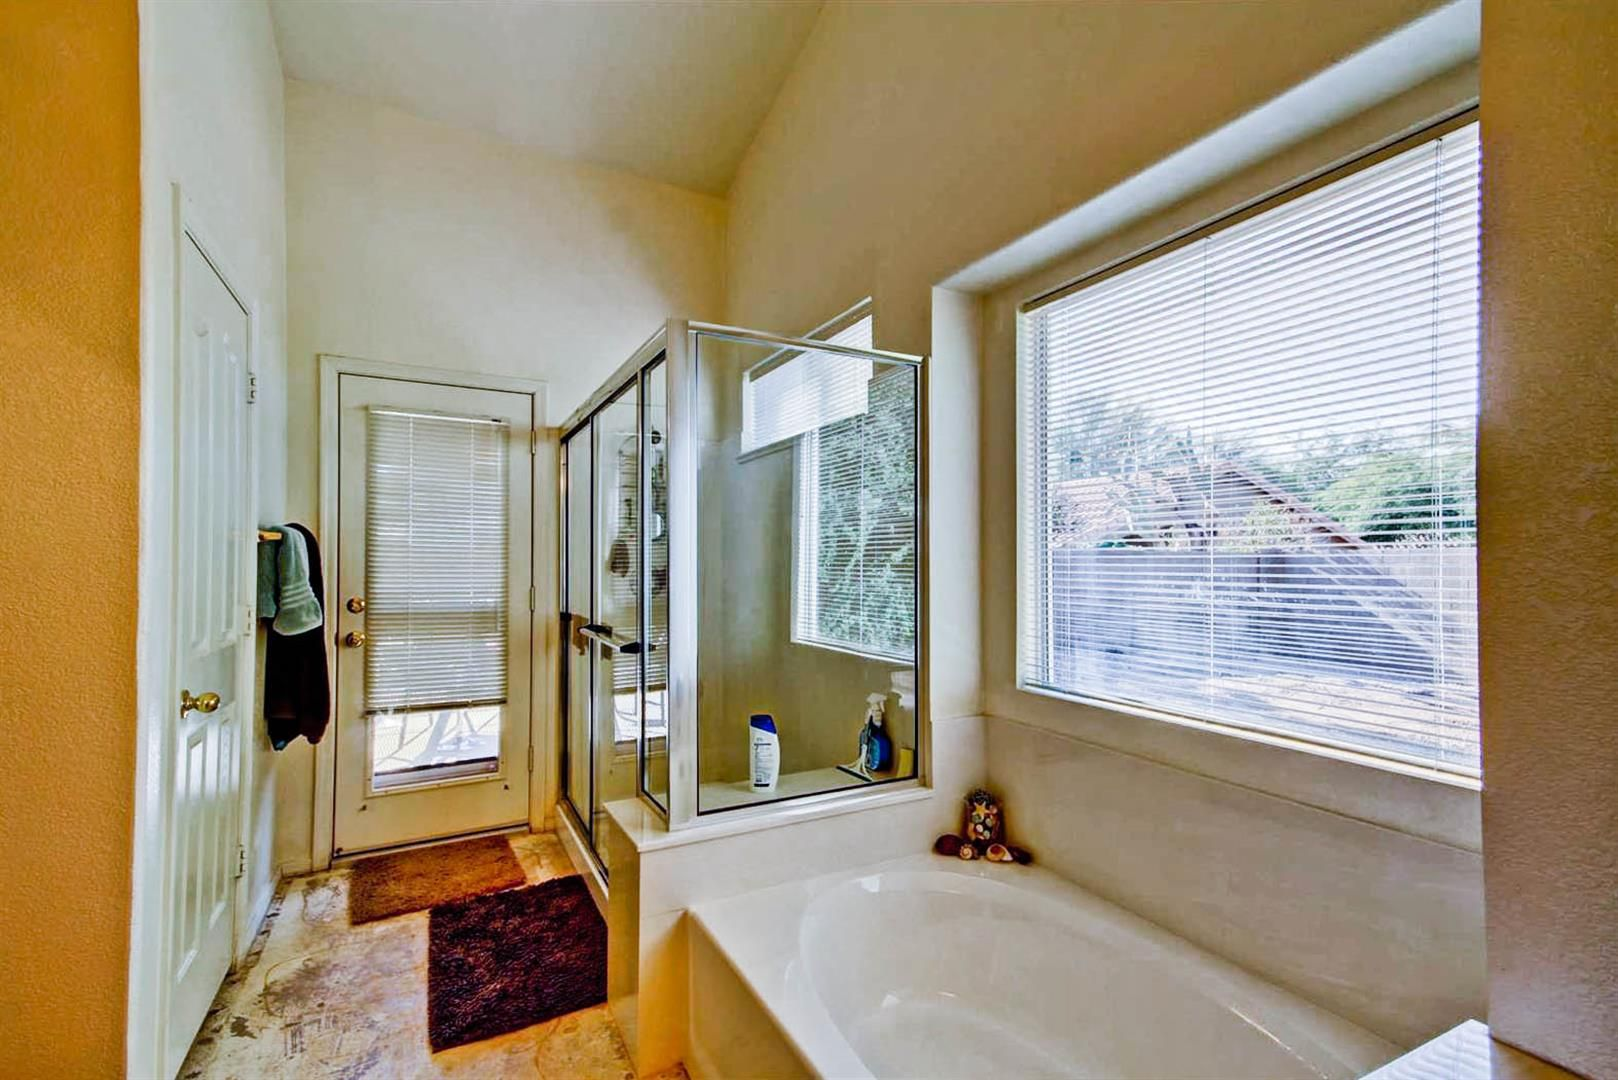 Separate Shower and Tub!